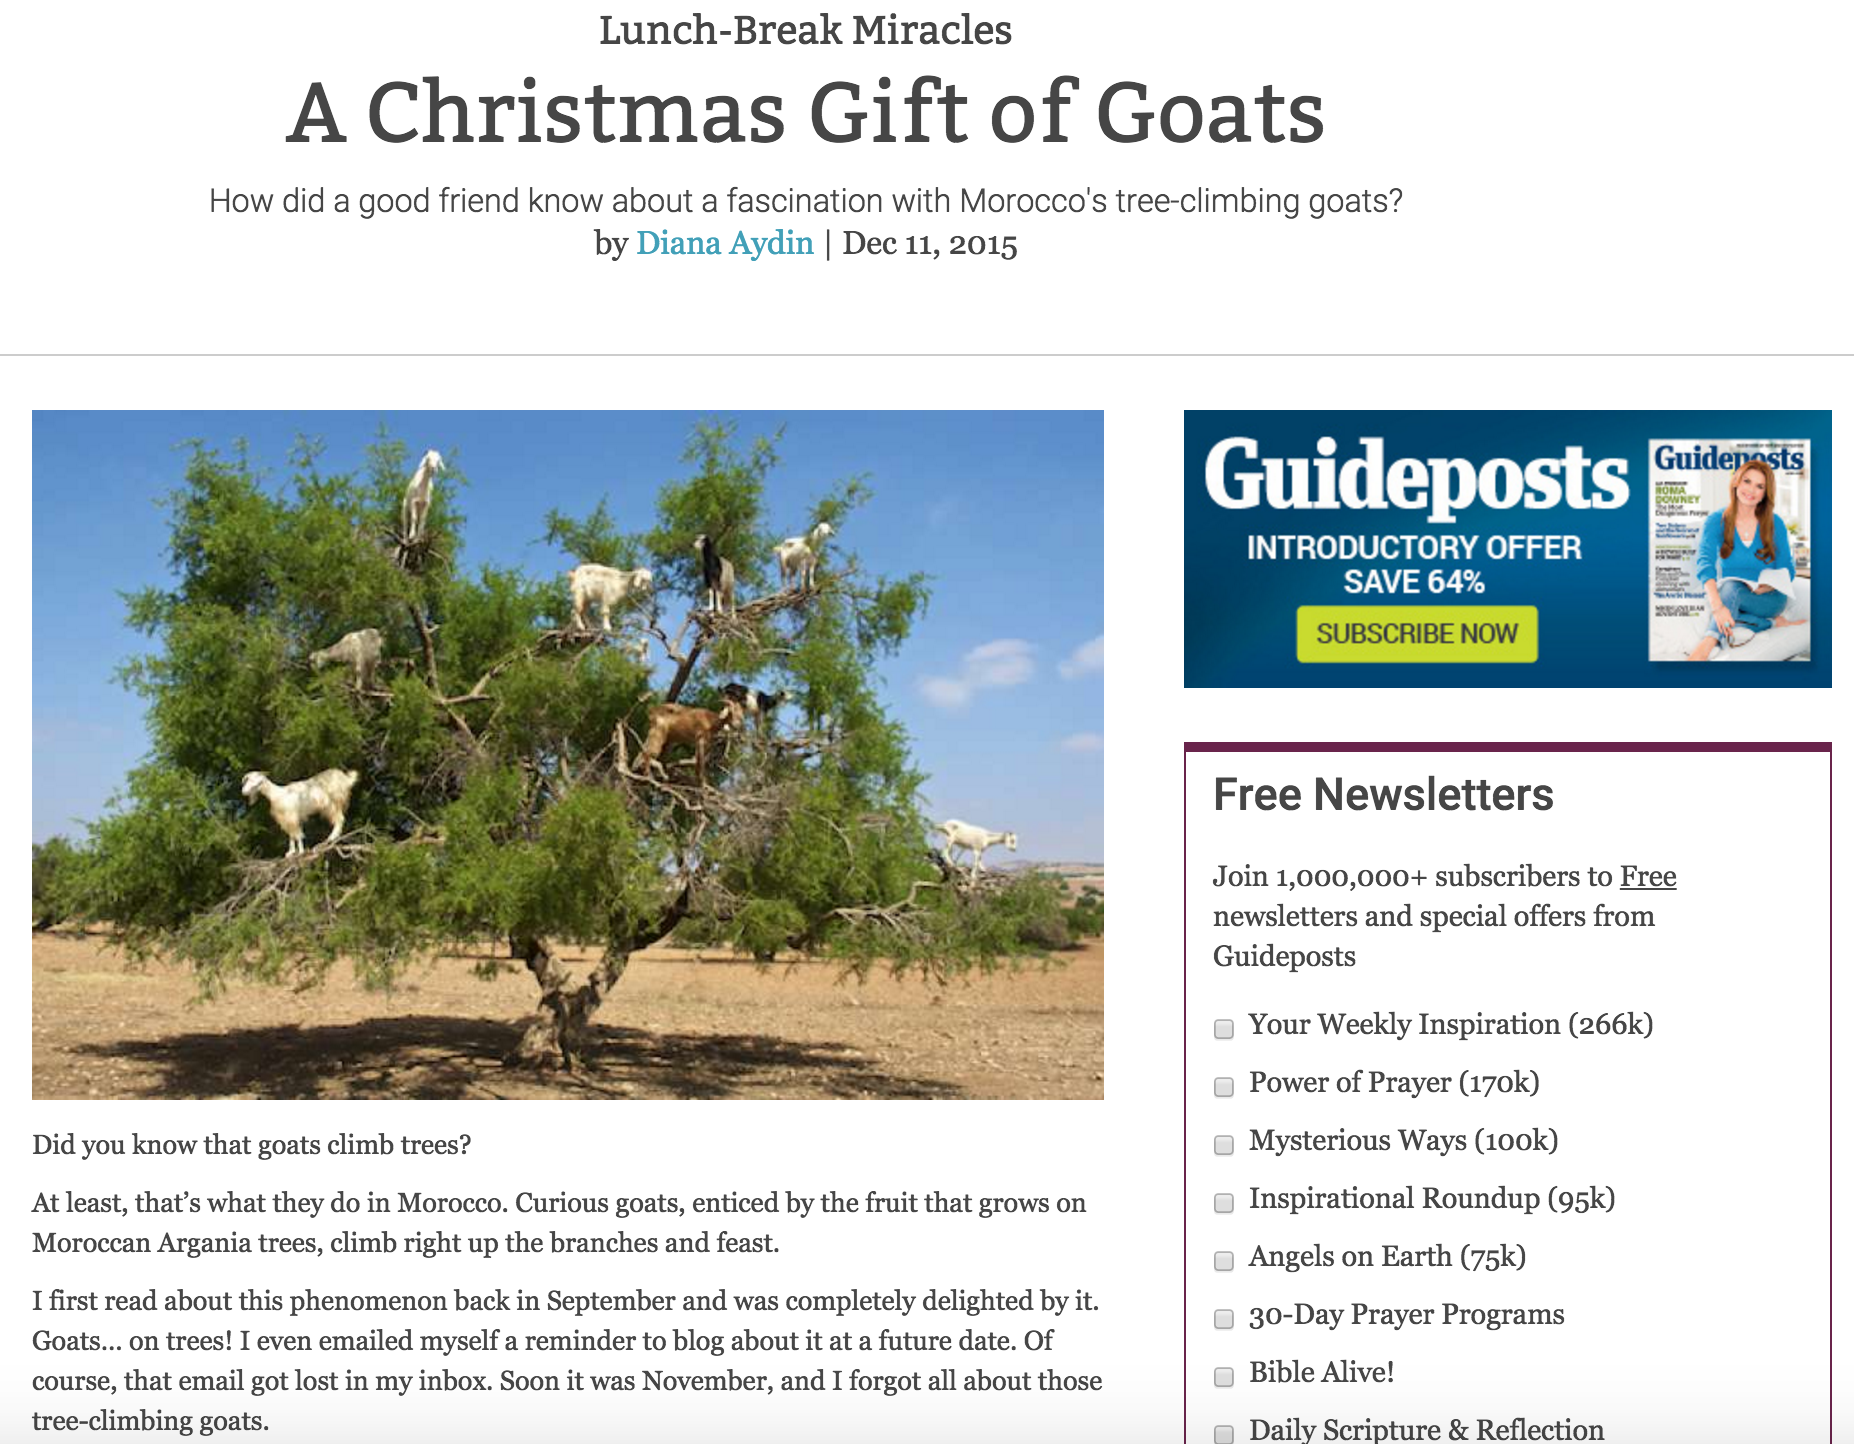 A Christmas Gift of Goats